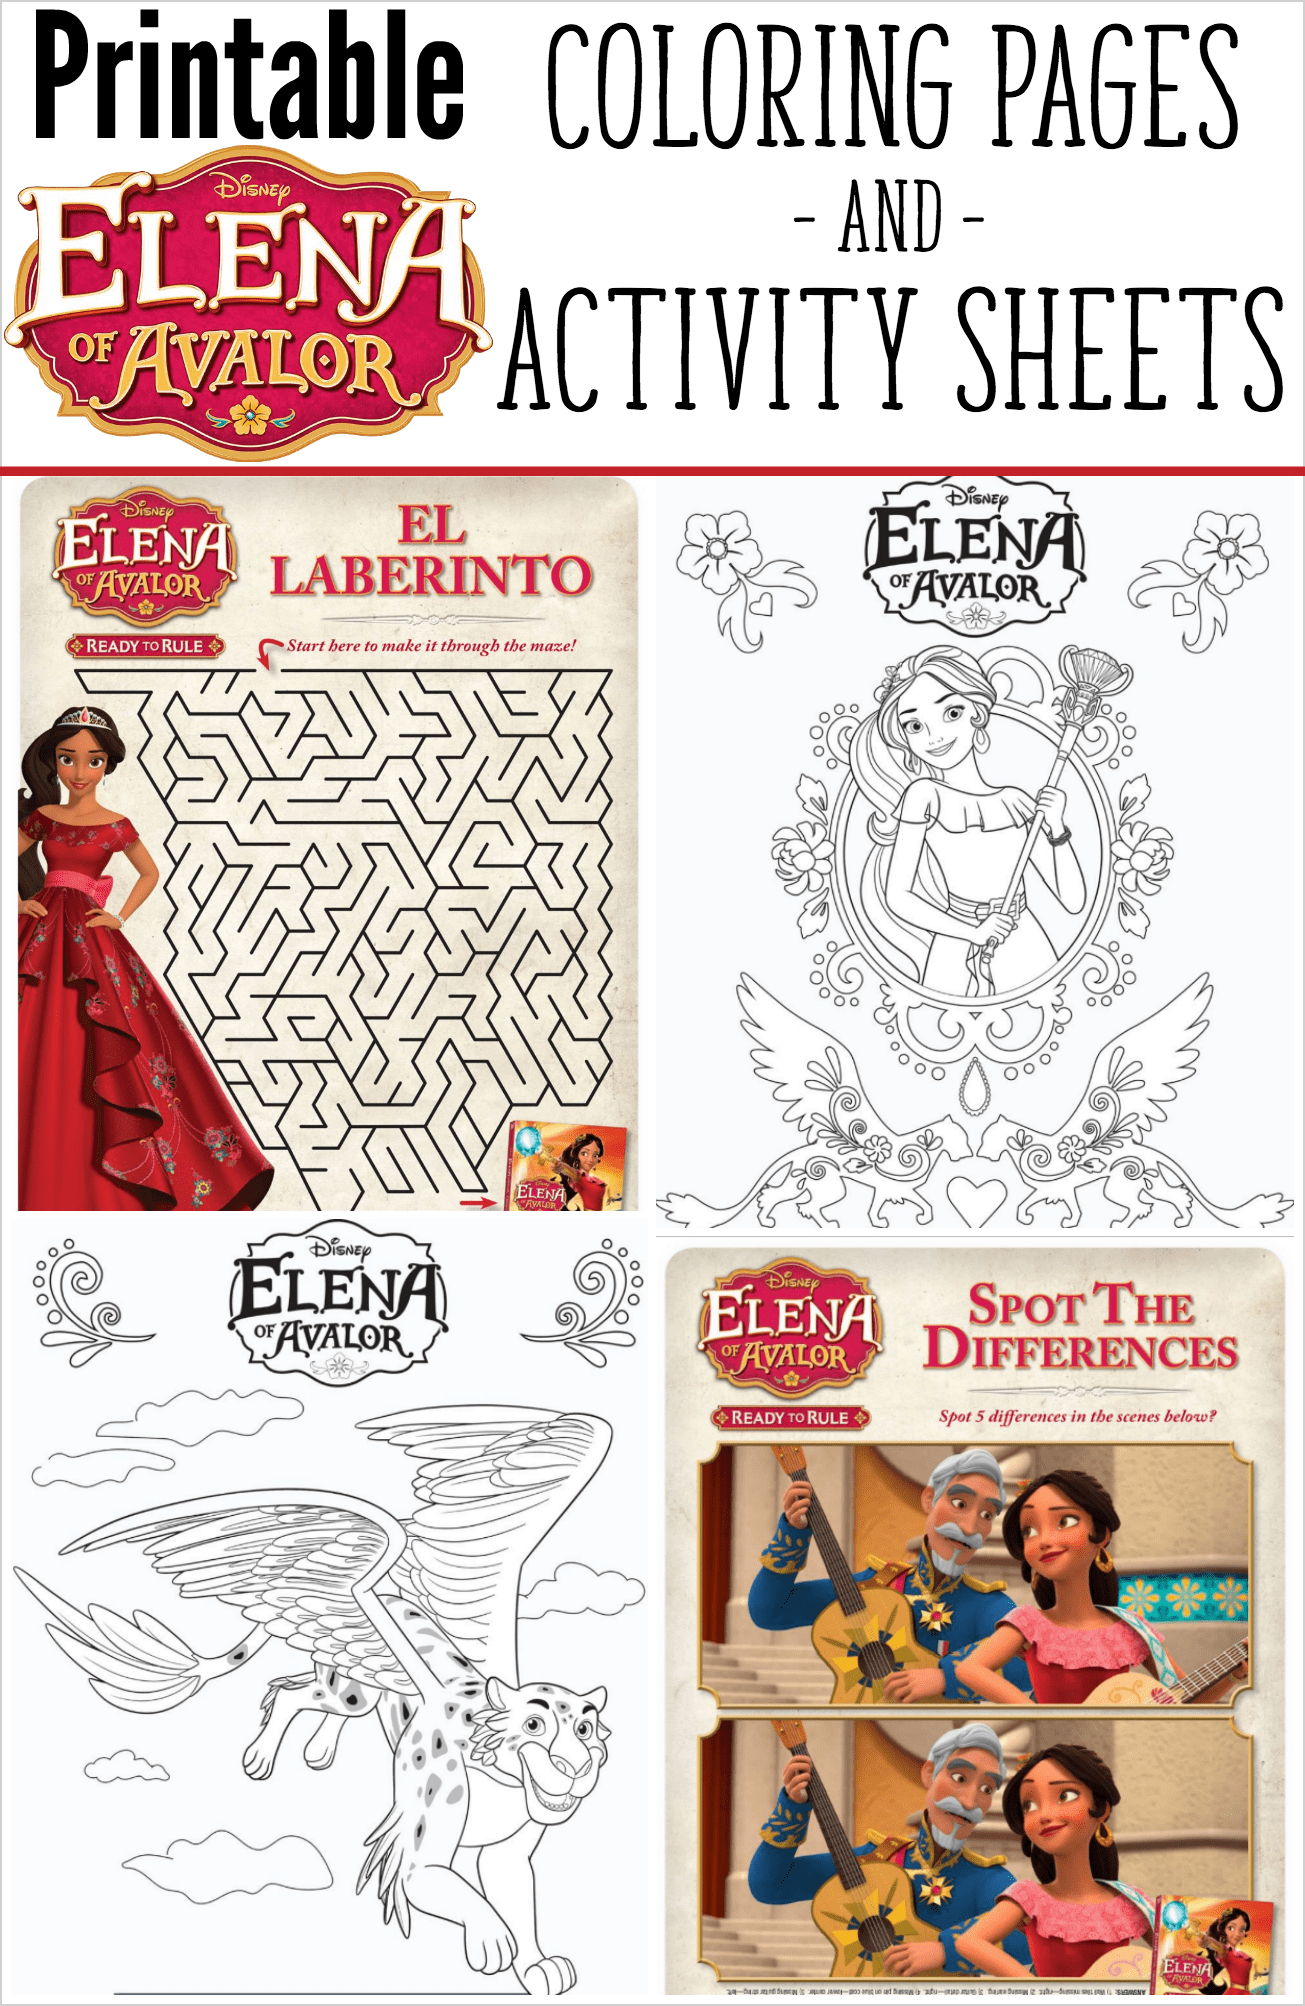 Elena Of Avalor Coloring Pages And Activity Sheets - Elena Of Avalor Free Printables